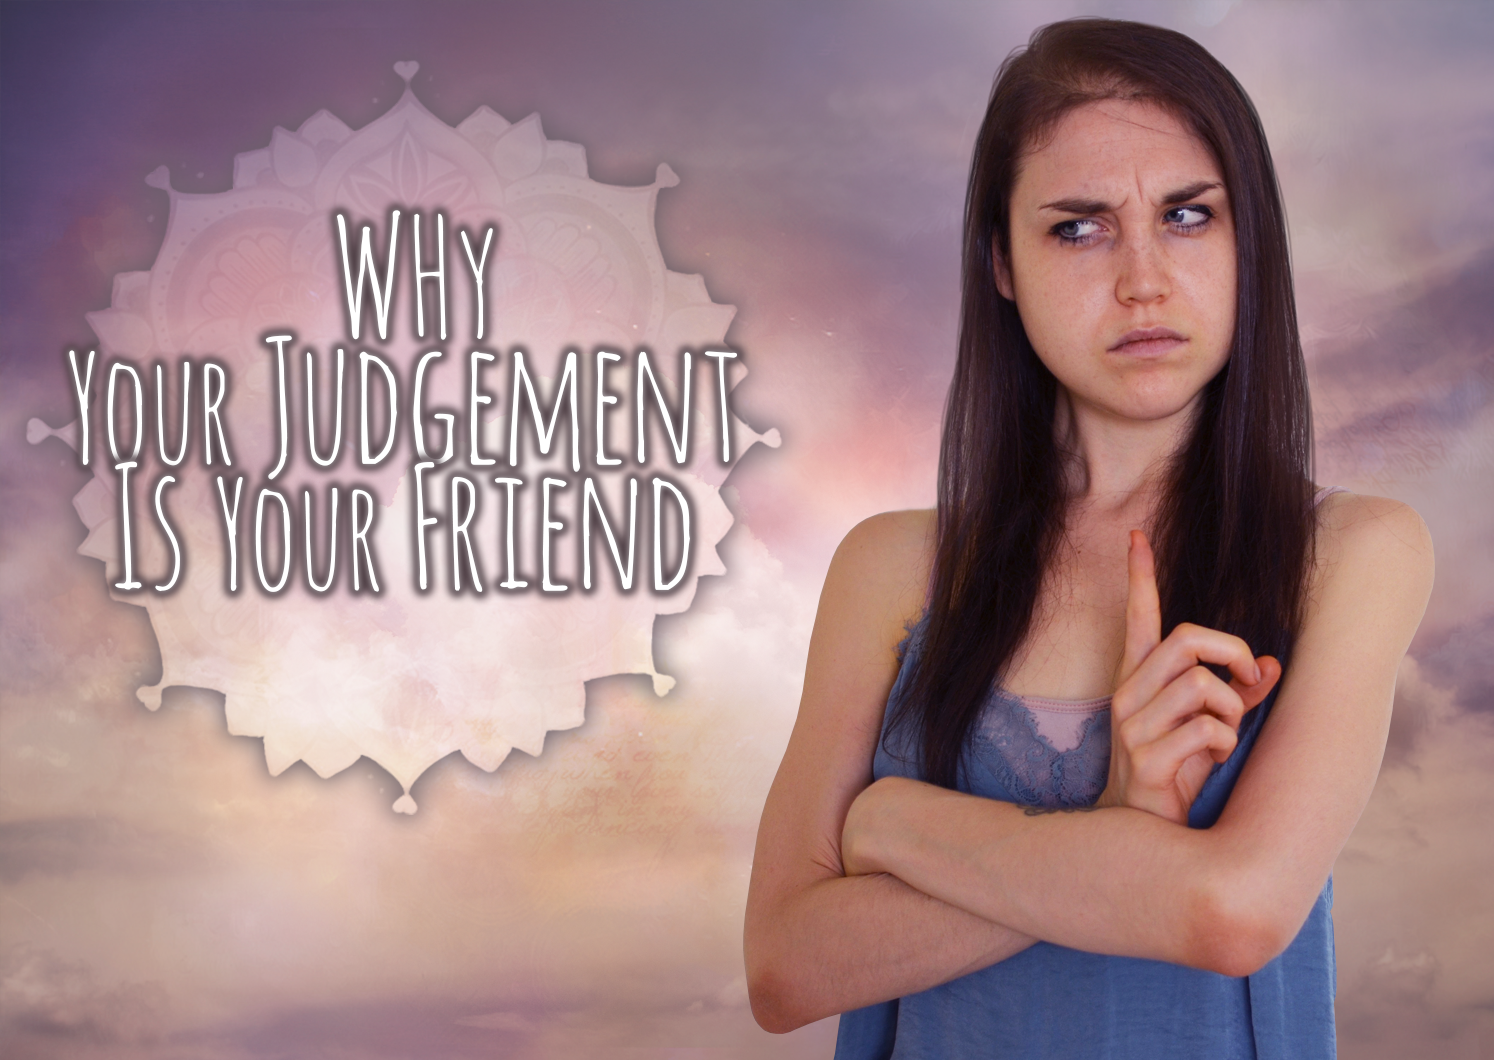 Why Judgement Is Your Friend